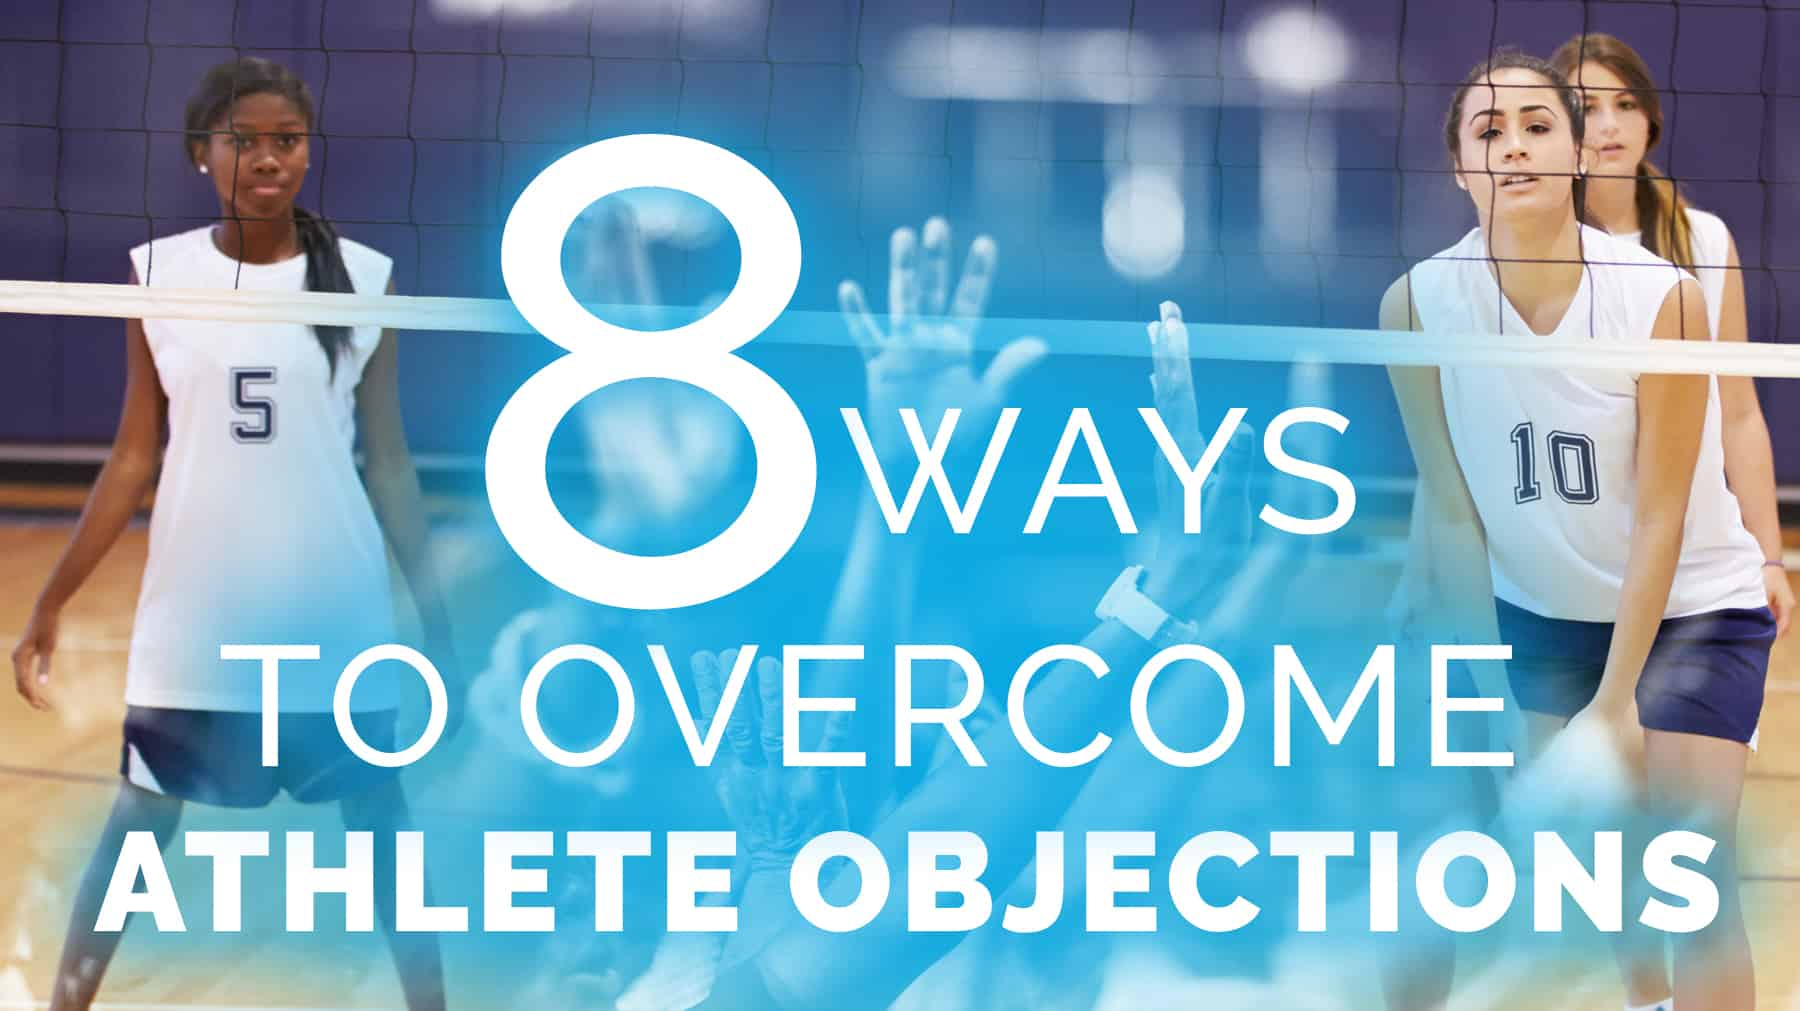 8 ways to overcome athlete objections